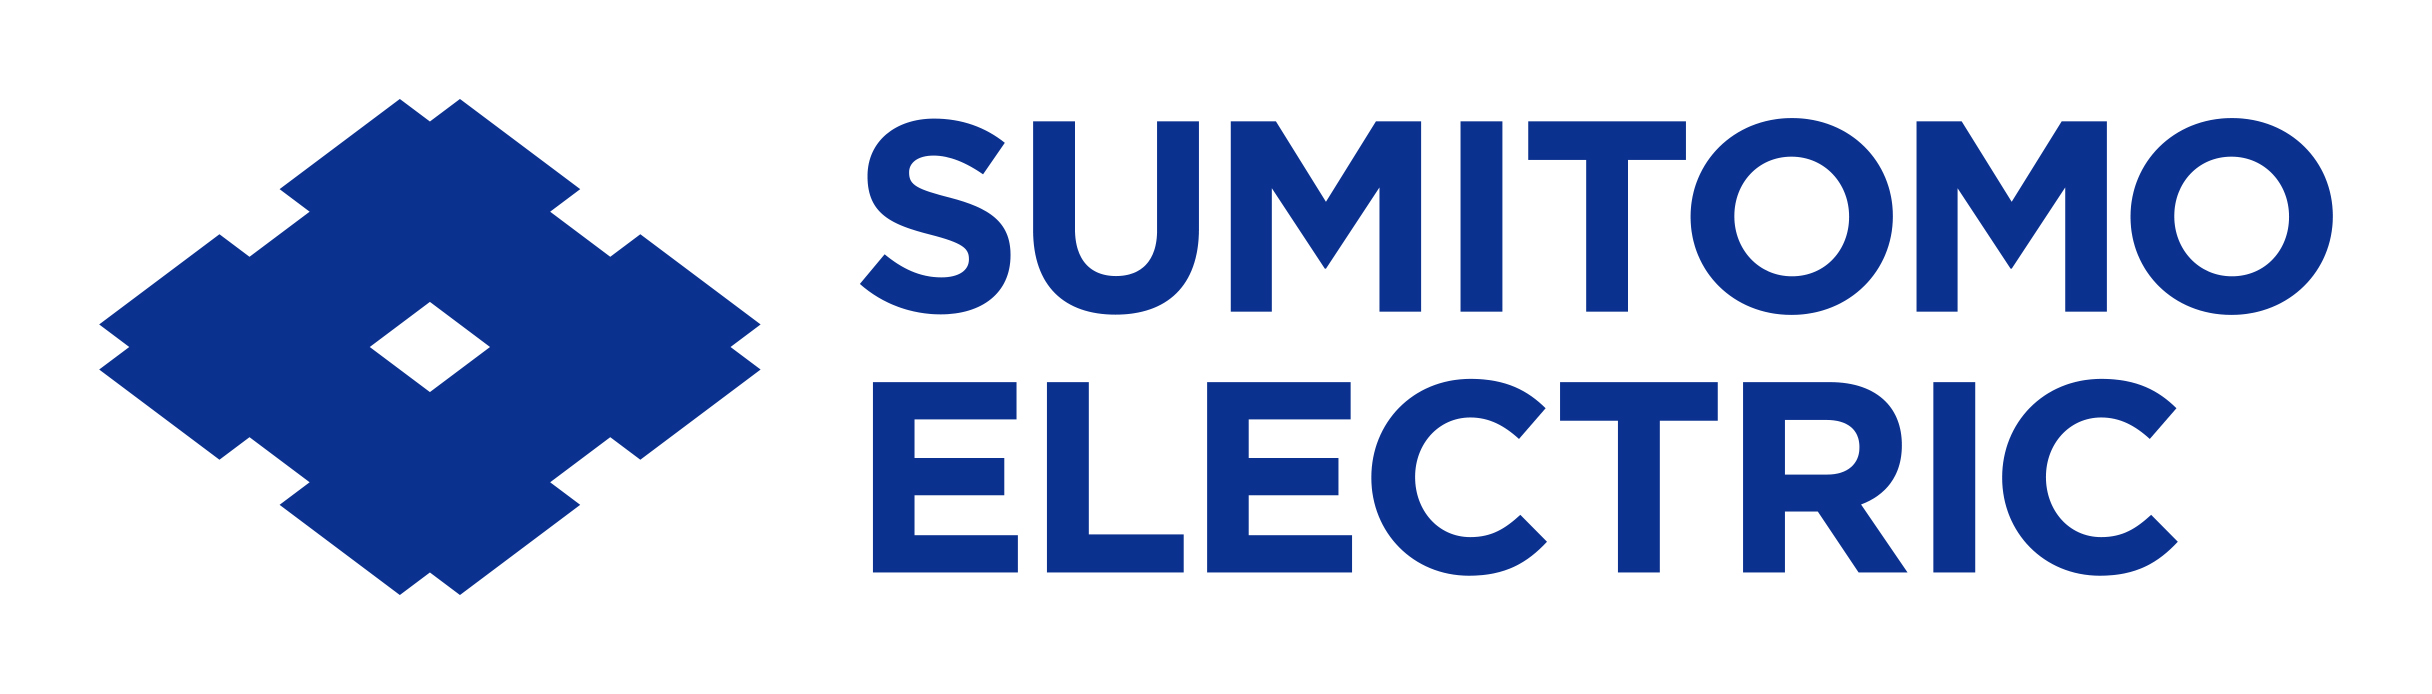 Sumitomo Electric Device Innovations